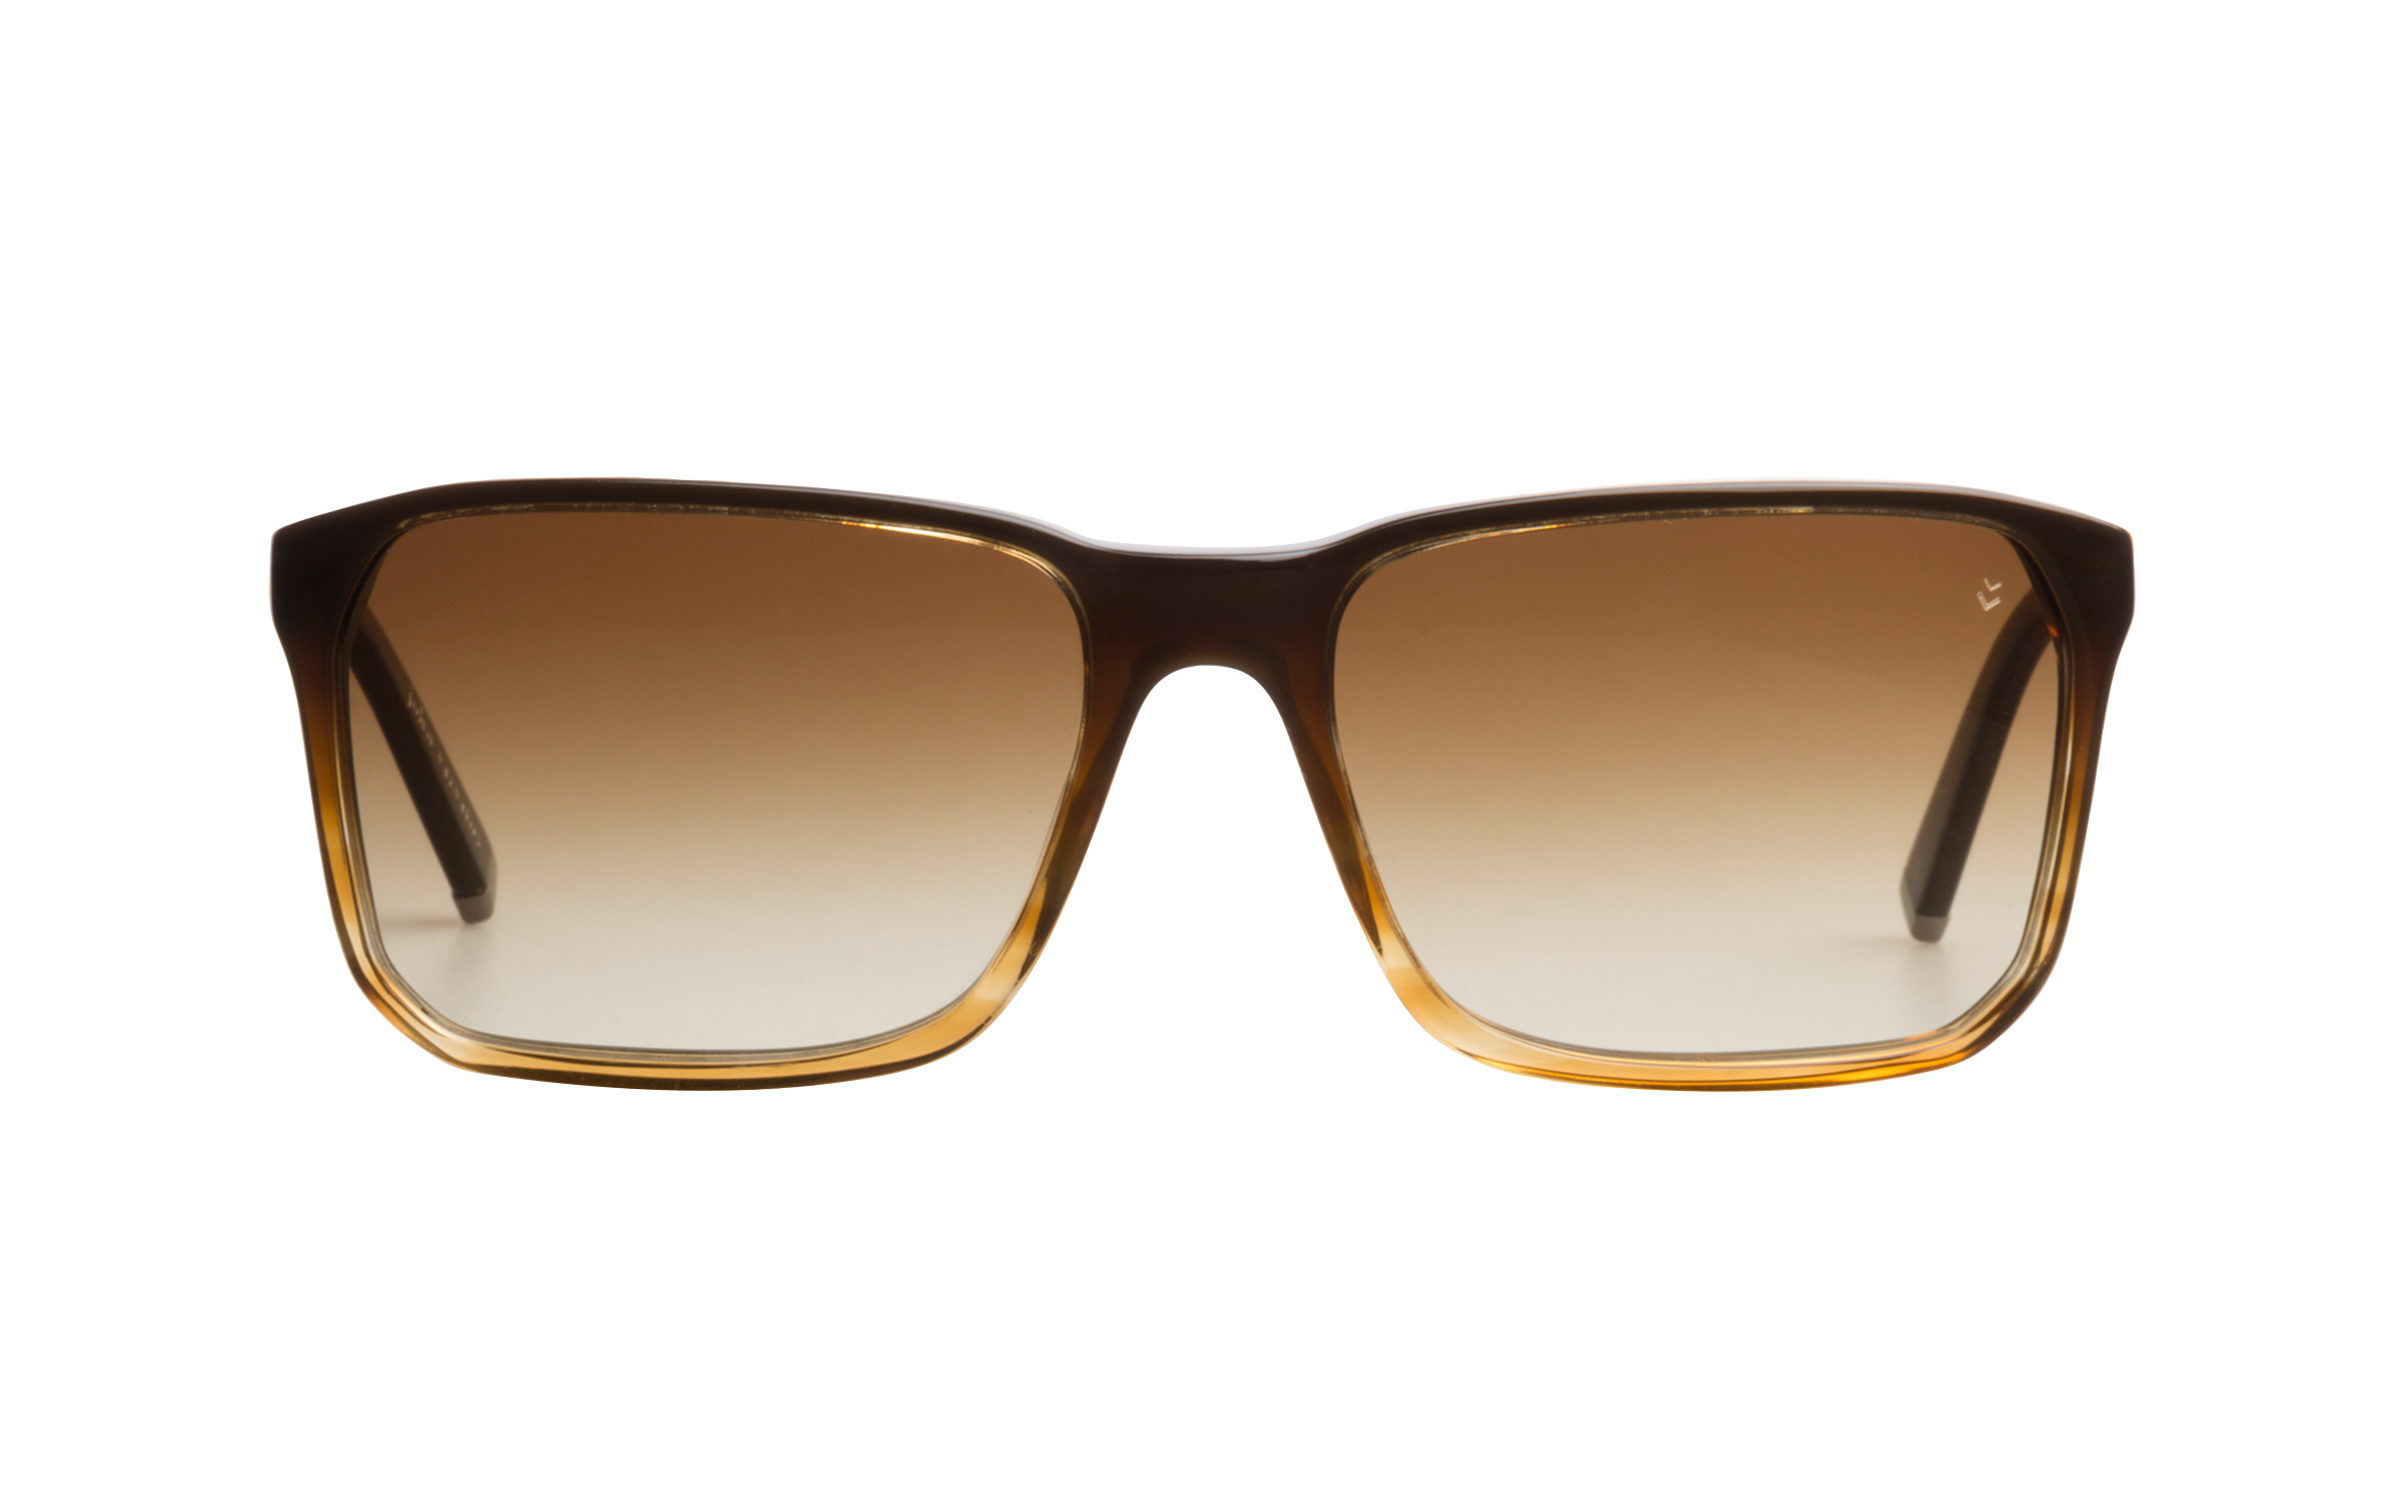 John_Varvatos_Sunglasses_Vintage_Brown_AcetateMetal_Online_Coastal